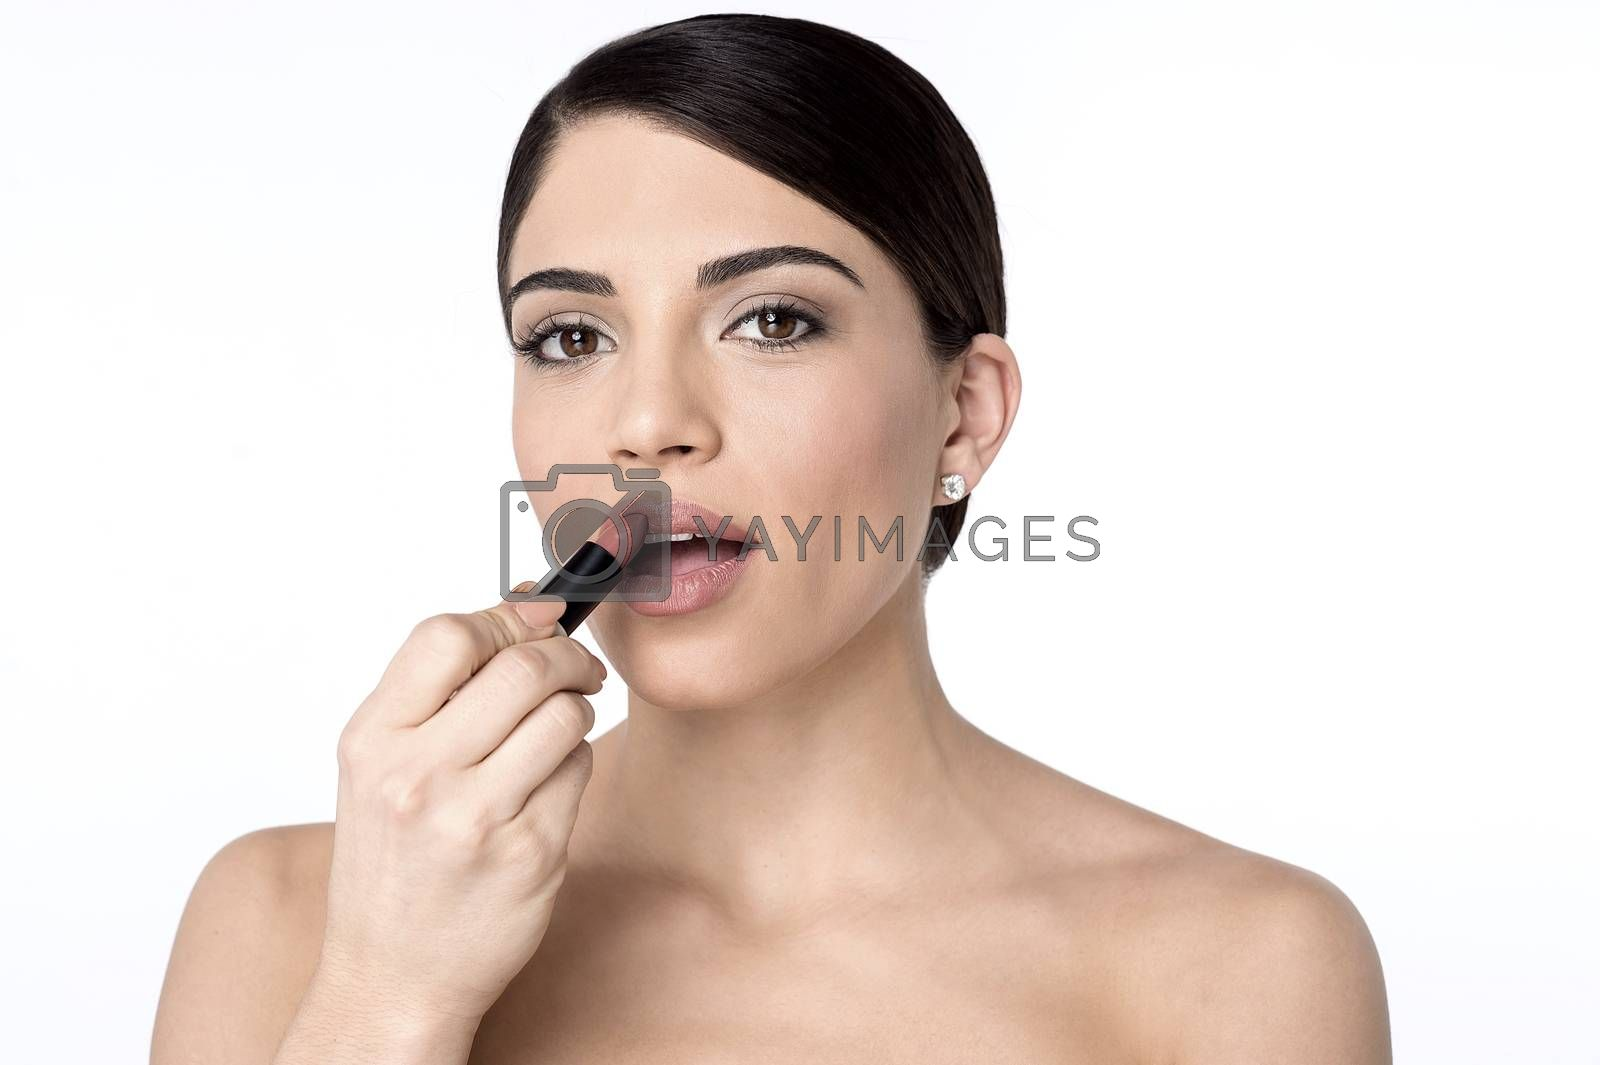 Pretty woman applying lipstick on her lips